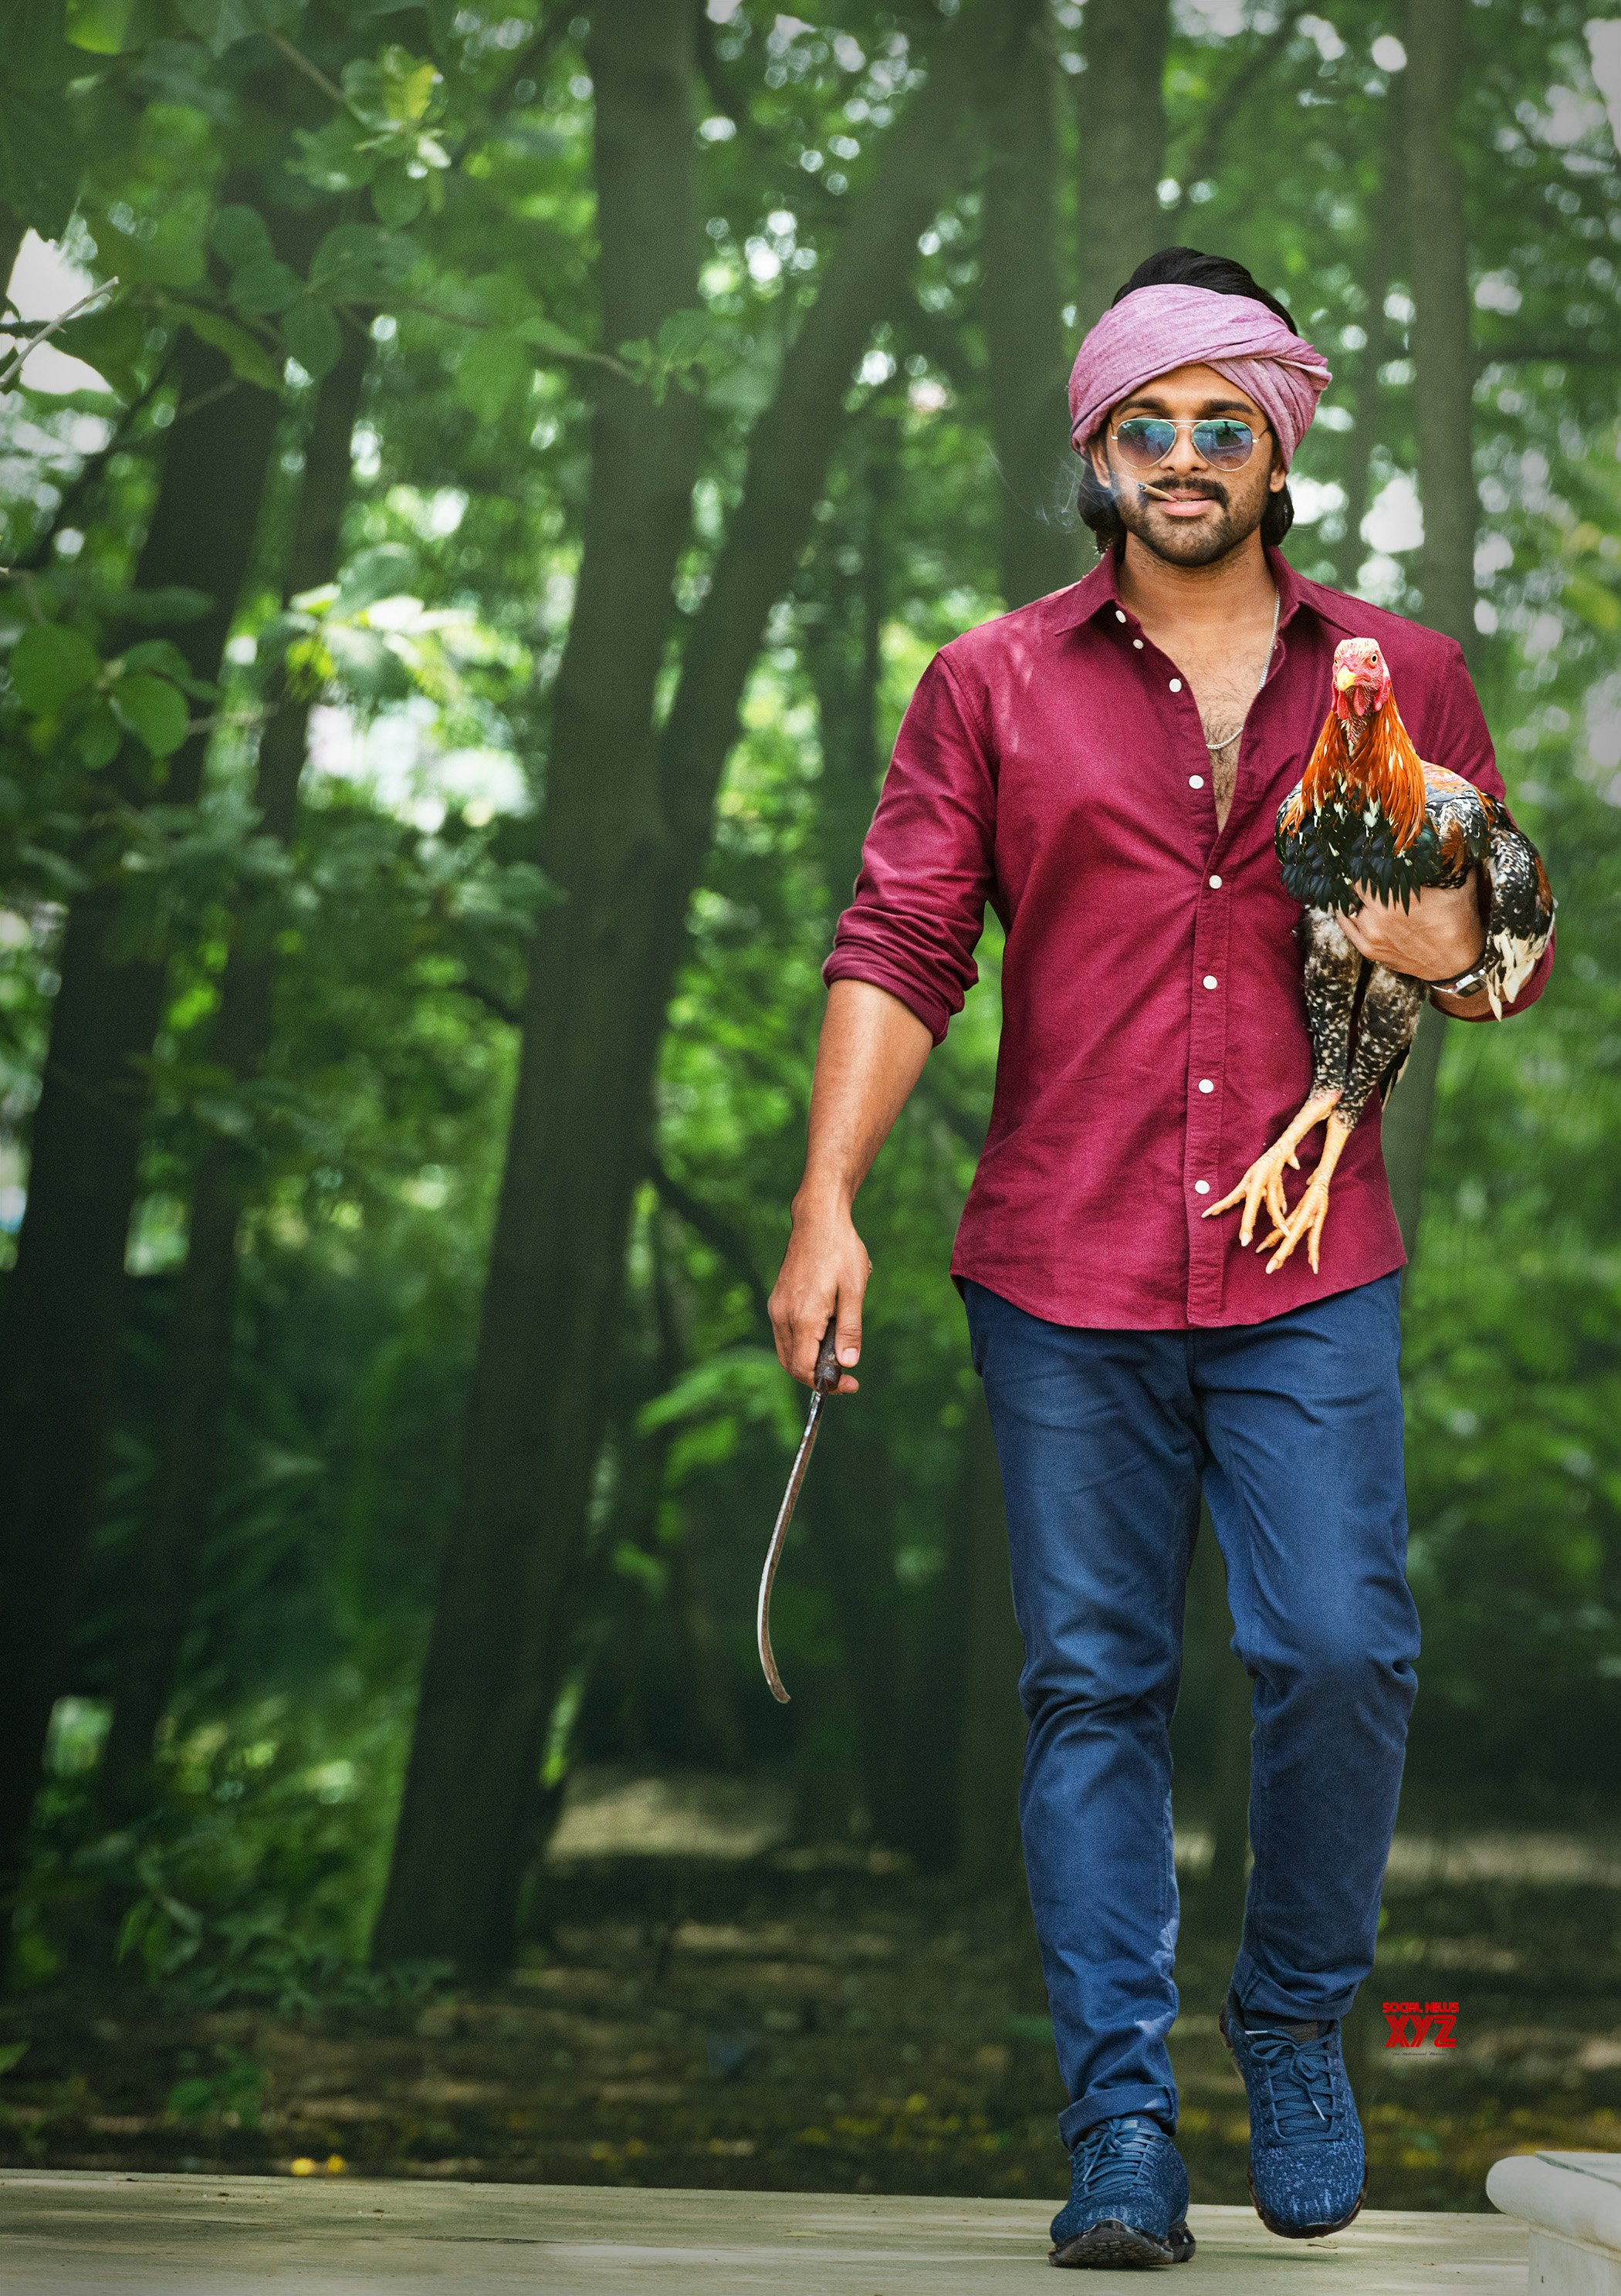 Ala Vaikunthapurramuloo Release Date Super HD Poster And Still